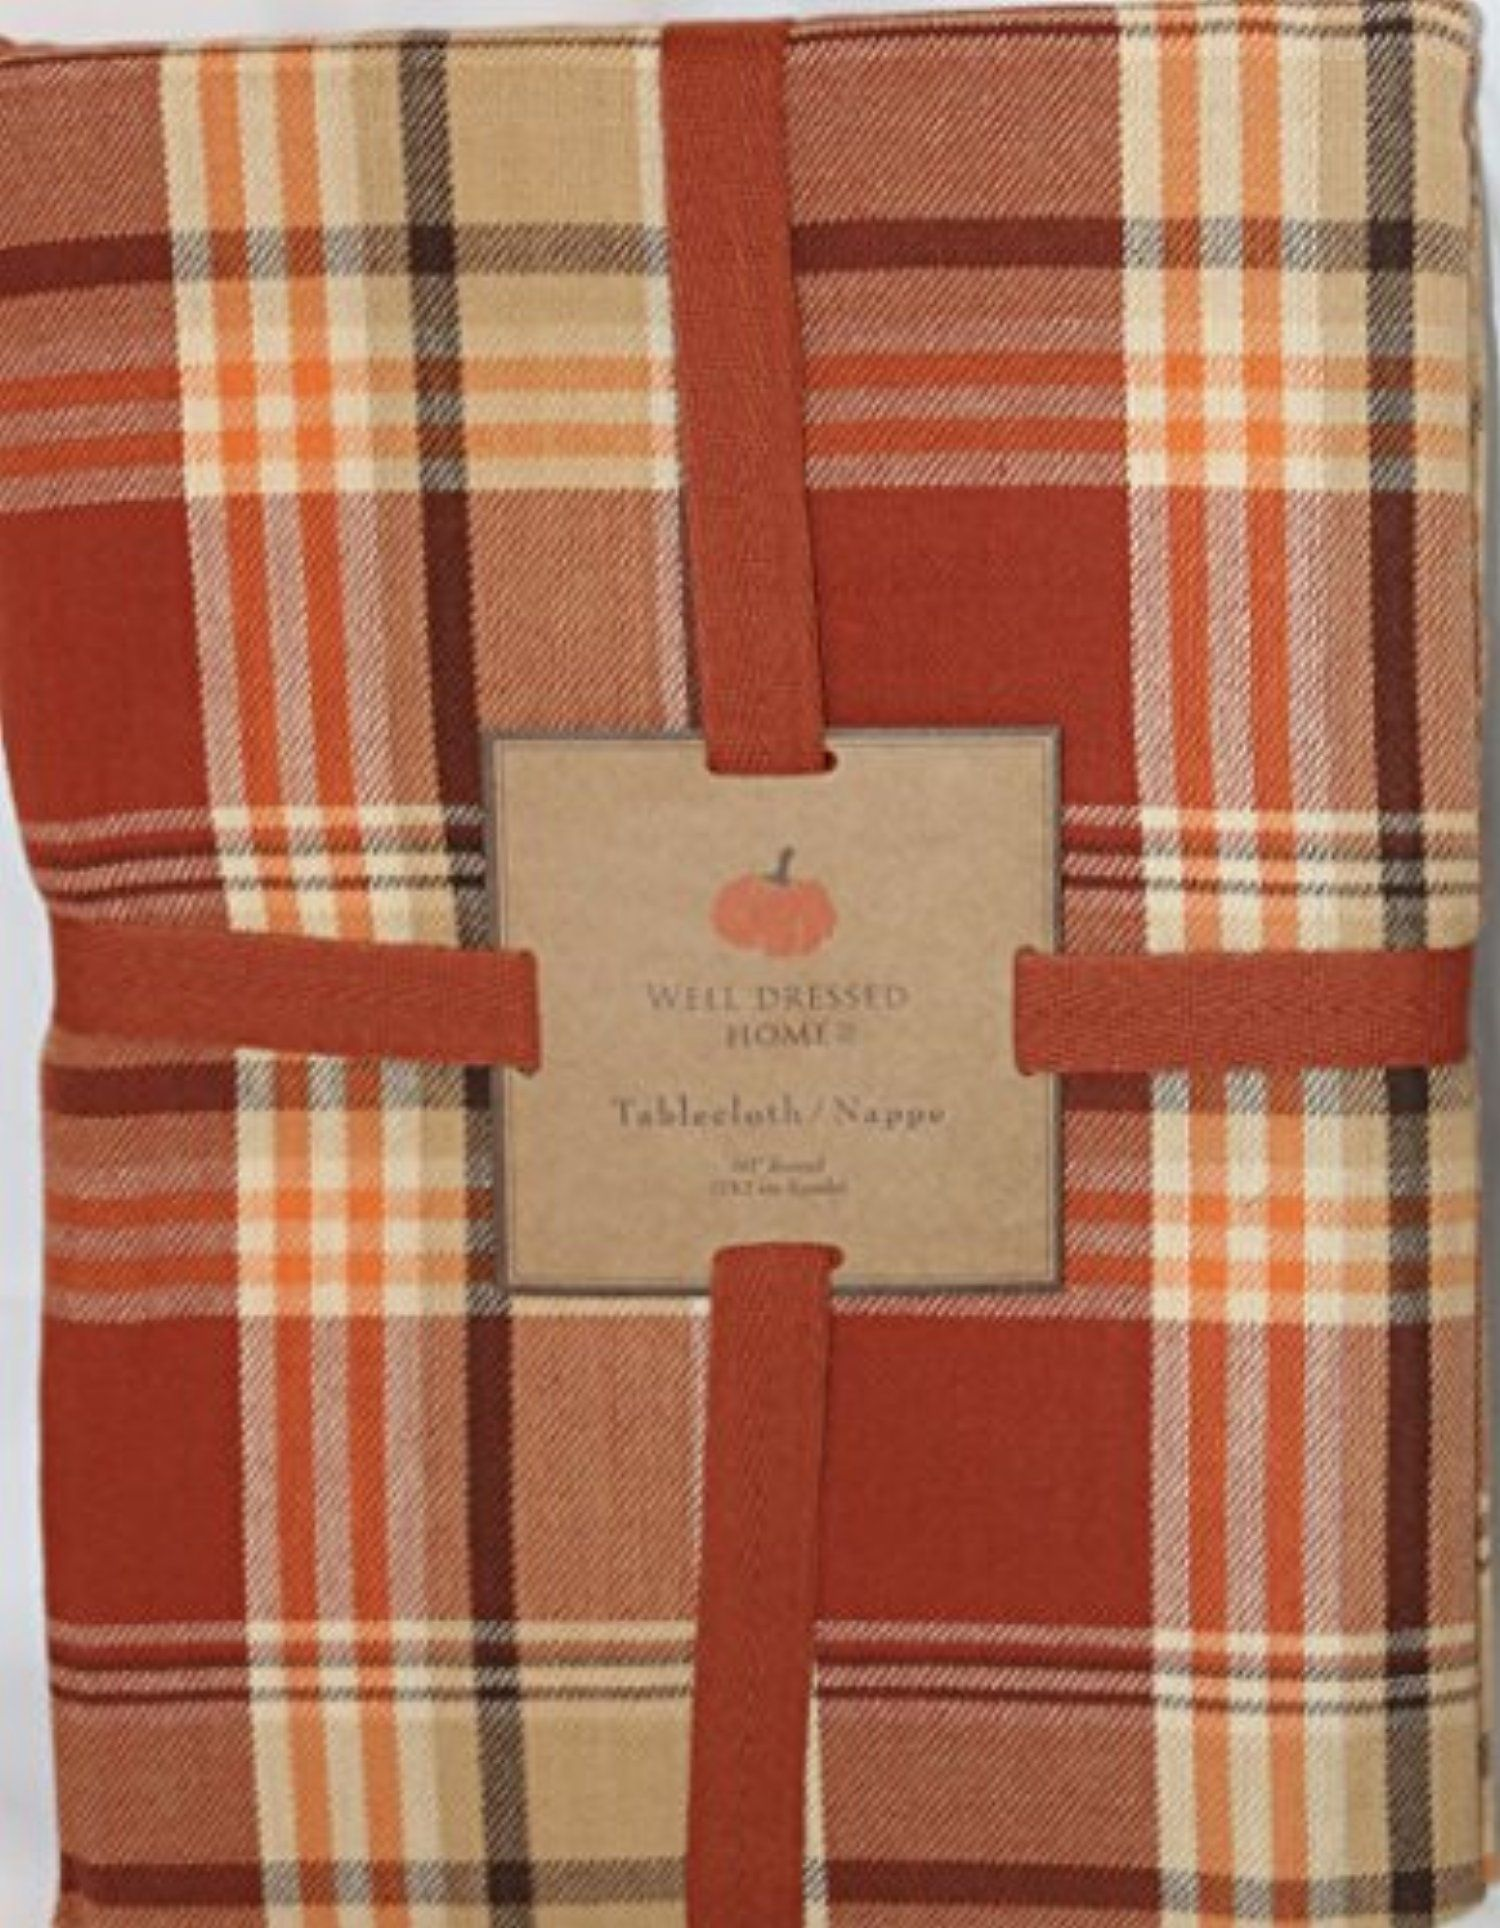 Captivating Well Dressed Home Fall Harvest Plaid Tablecloth 60 In Round Thanksgiving  Autumn Tartan Check